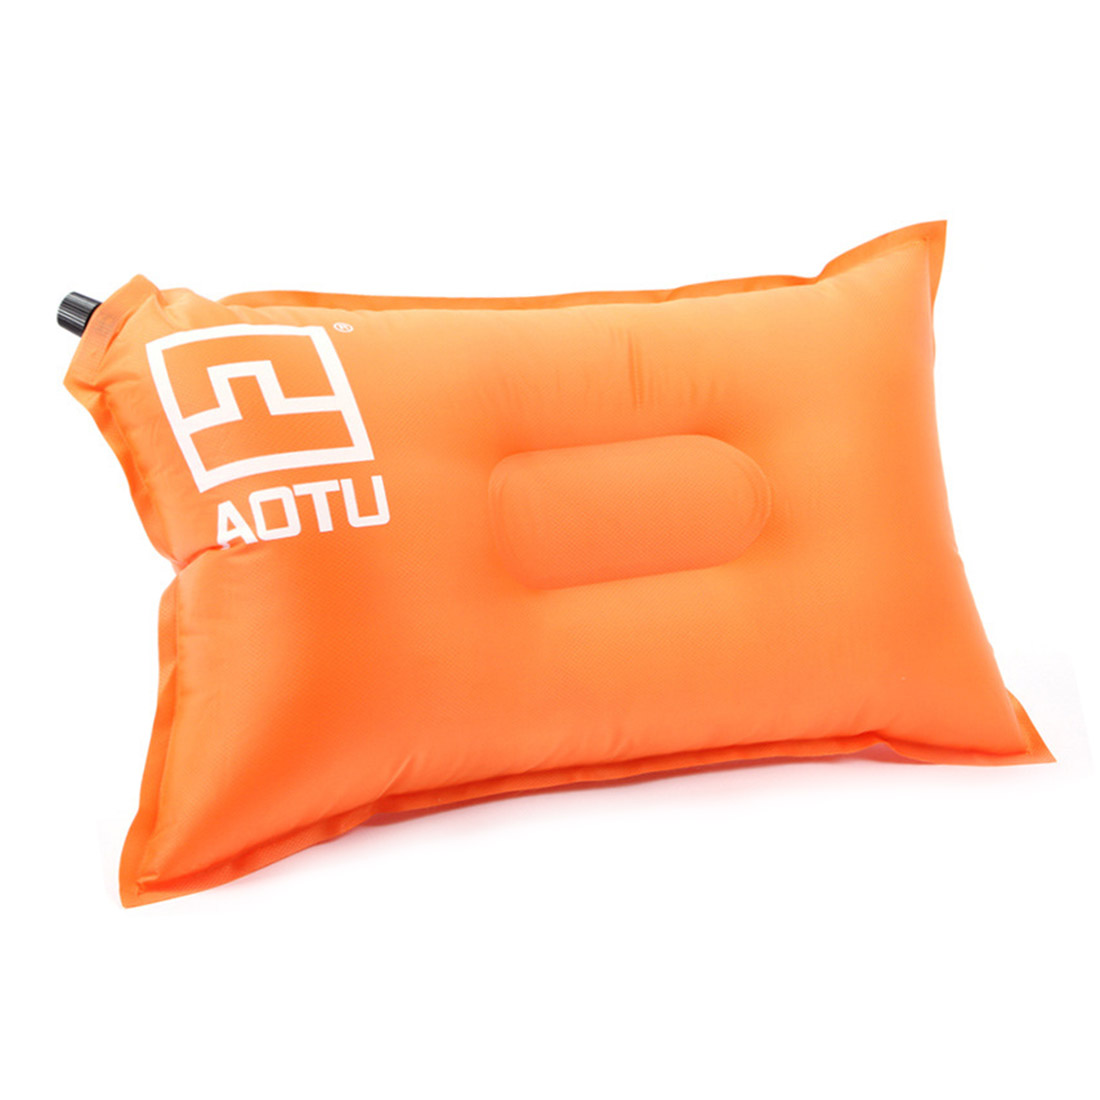 AOTU Automatic Inflatable Outdoor Pillow, Orange(China (Mainland))